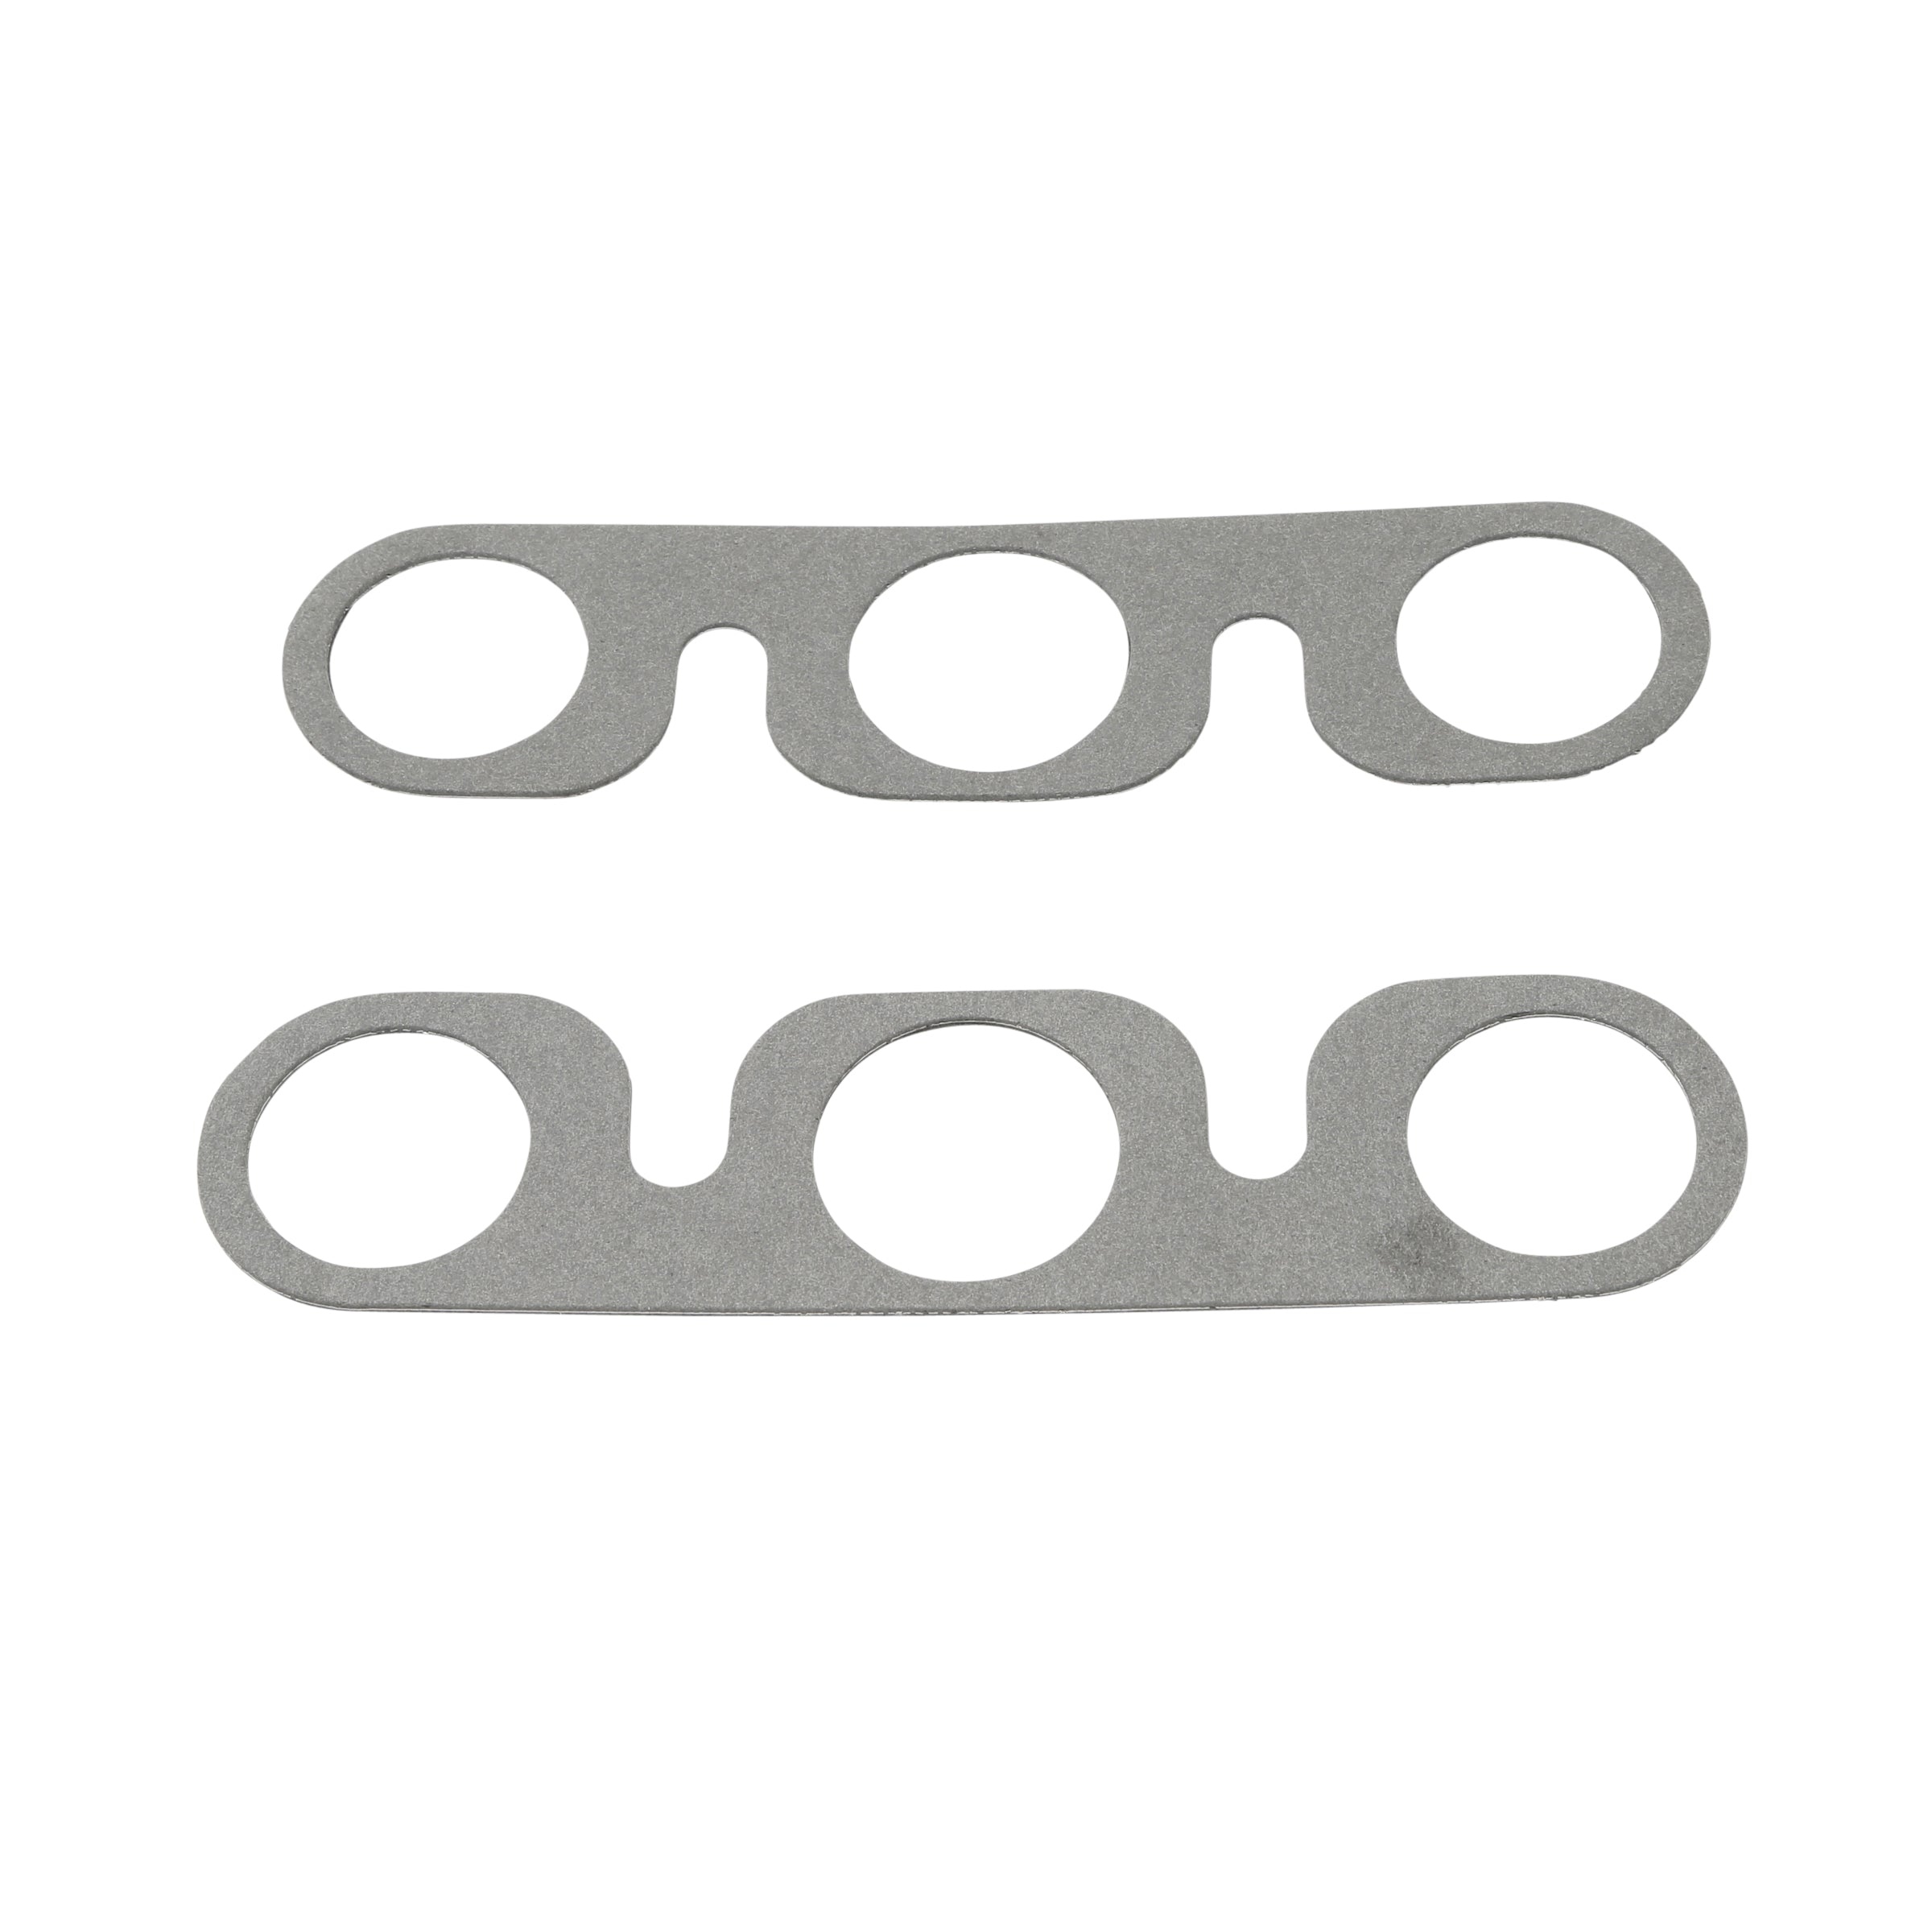 Exhaust Manifold Gasket Set • 1928-34